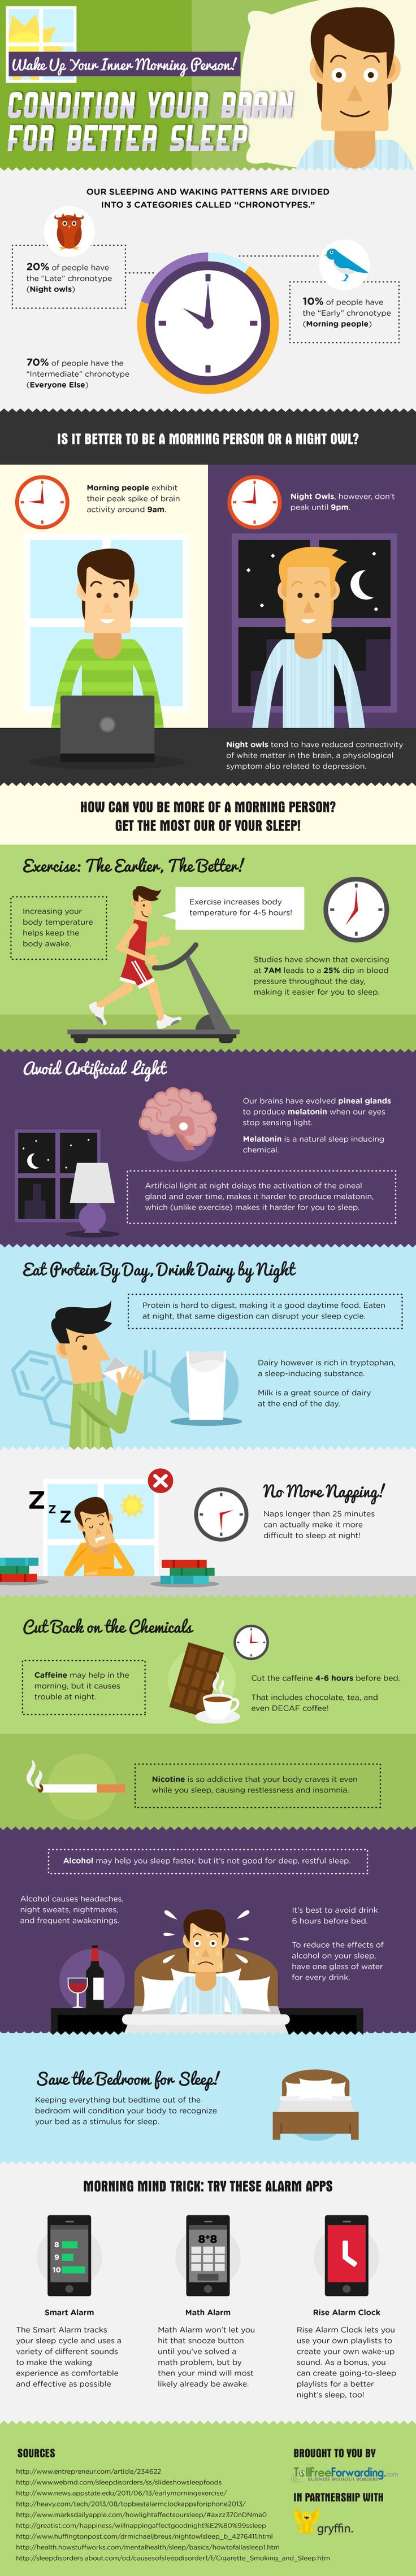 """How to Become More of a Morning Person #Infographic - """"Get moving with exercise - Save the bedroom for snoozing - Eat protein by day, drink dairy by night... """" More Pins on Building routines and habits: http://www.pinterest.com/addfreesources/basic-self-care-building-routines-and-habits/"""